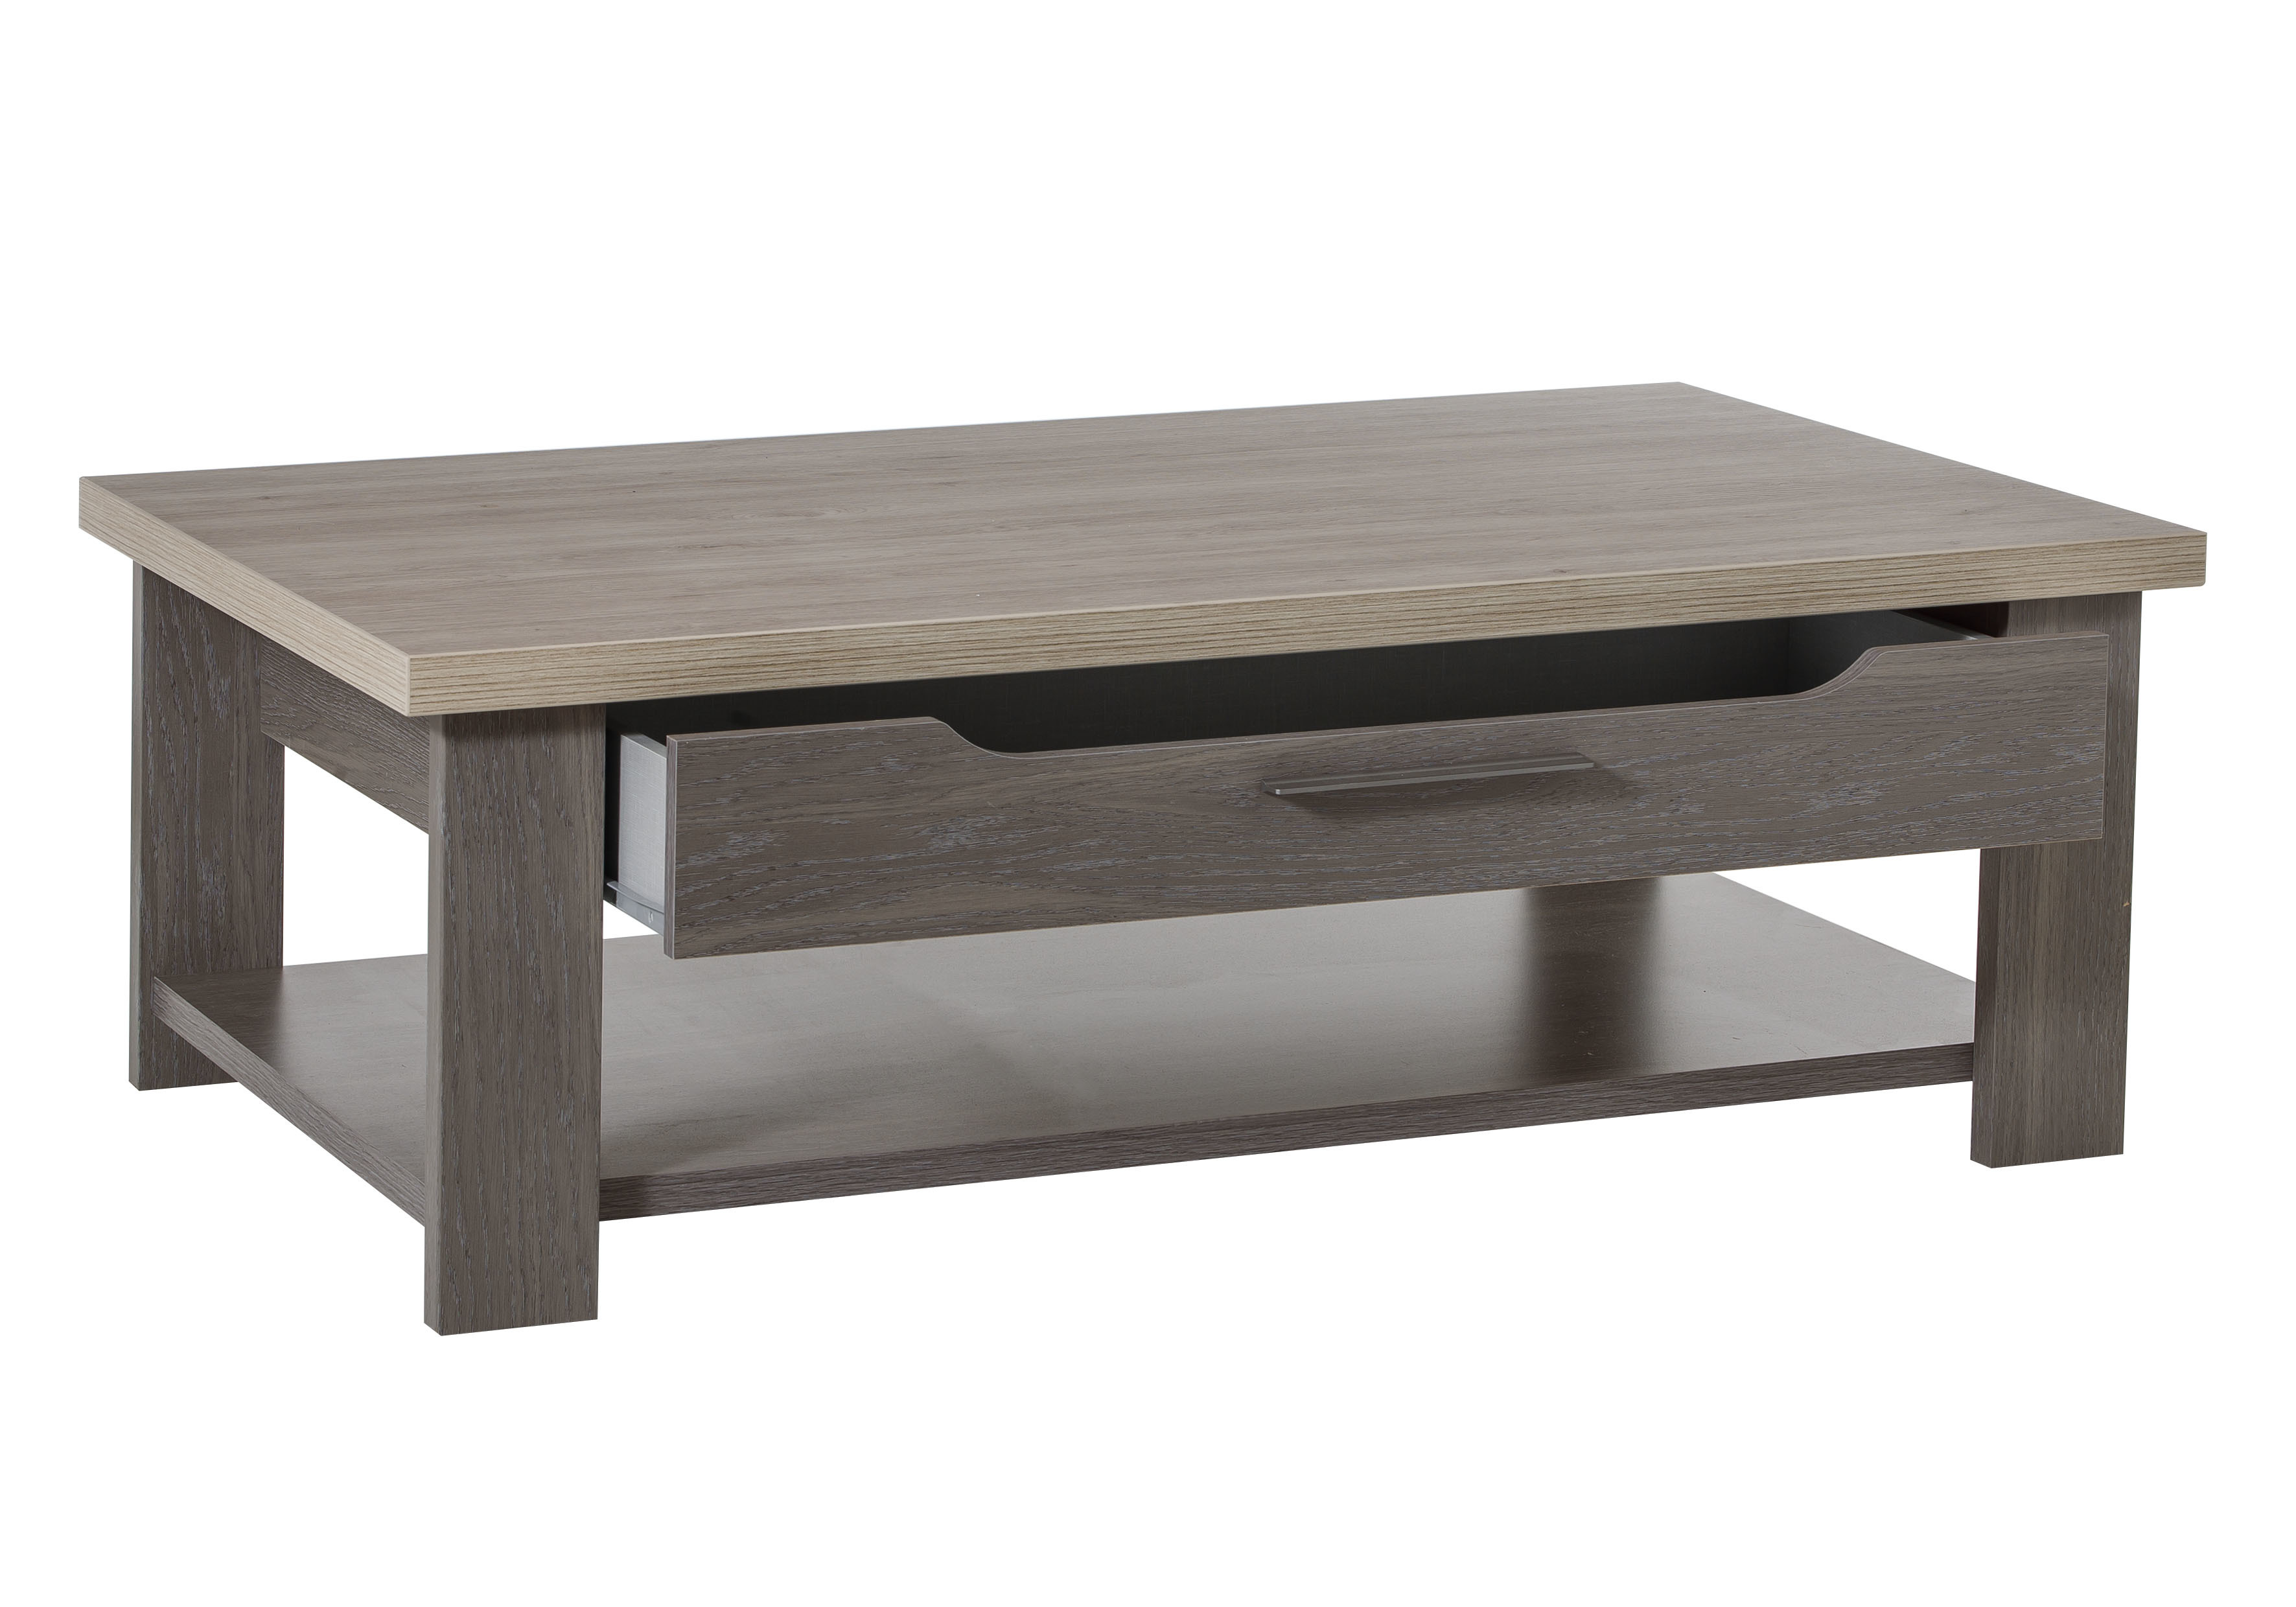 Gami Table Basse Toscane Chene Pas Cher Achat Vente Tables